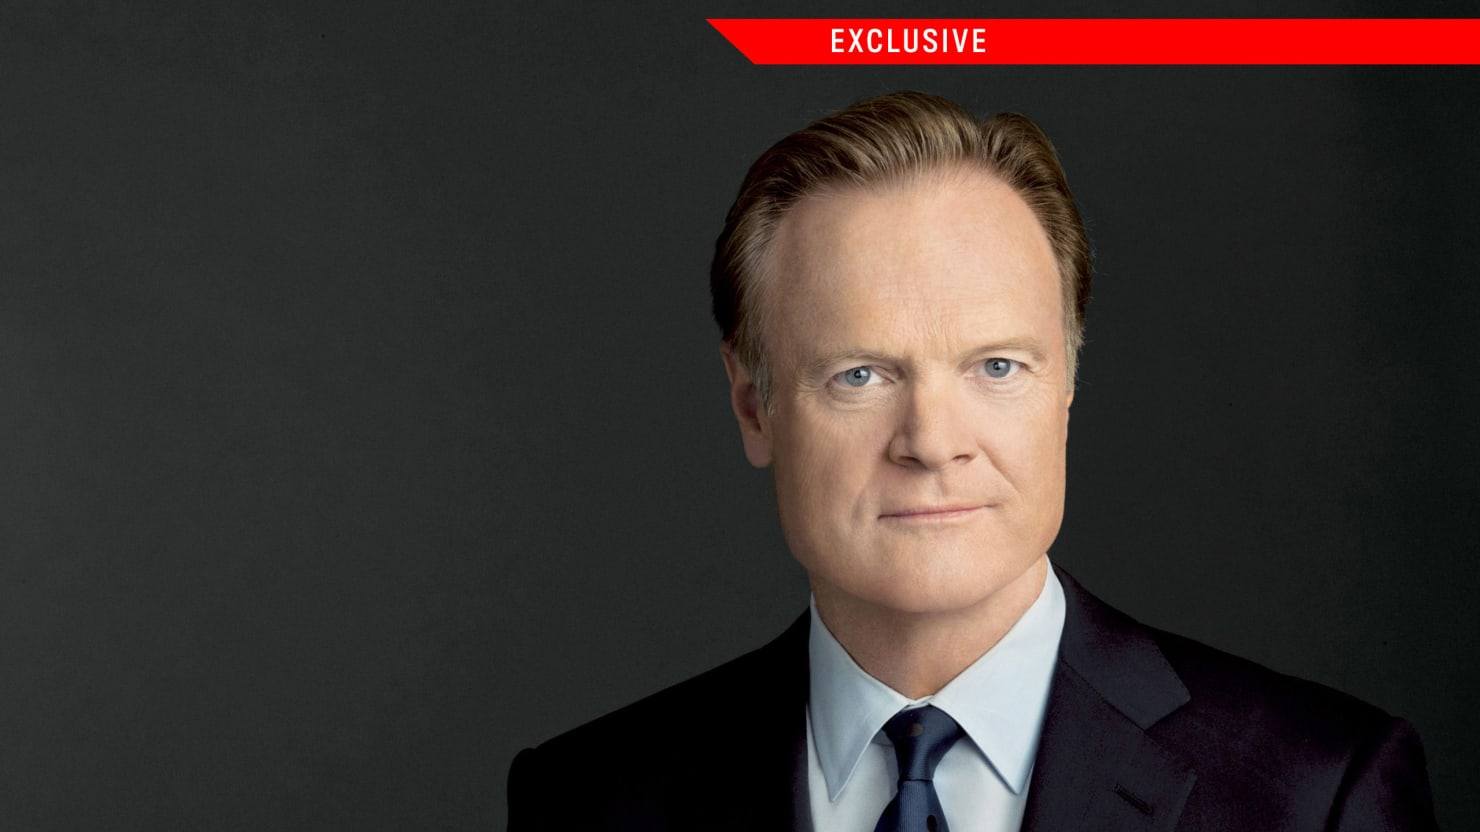 Make The Cut >> The Crash and Churn of Lawrence O'Donnell